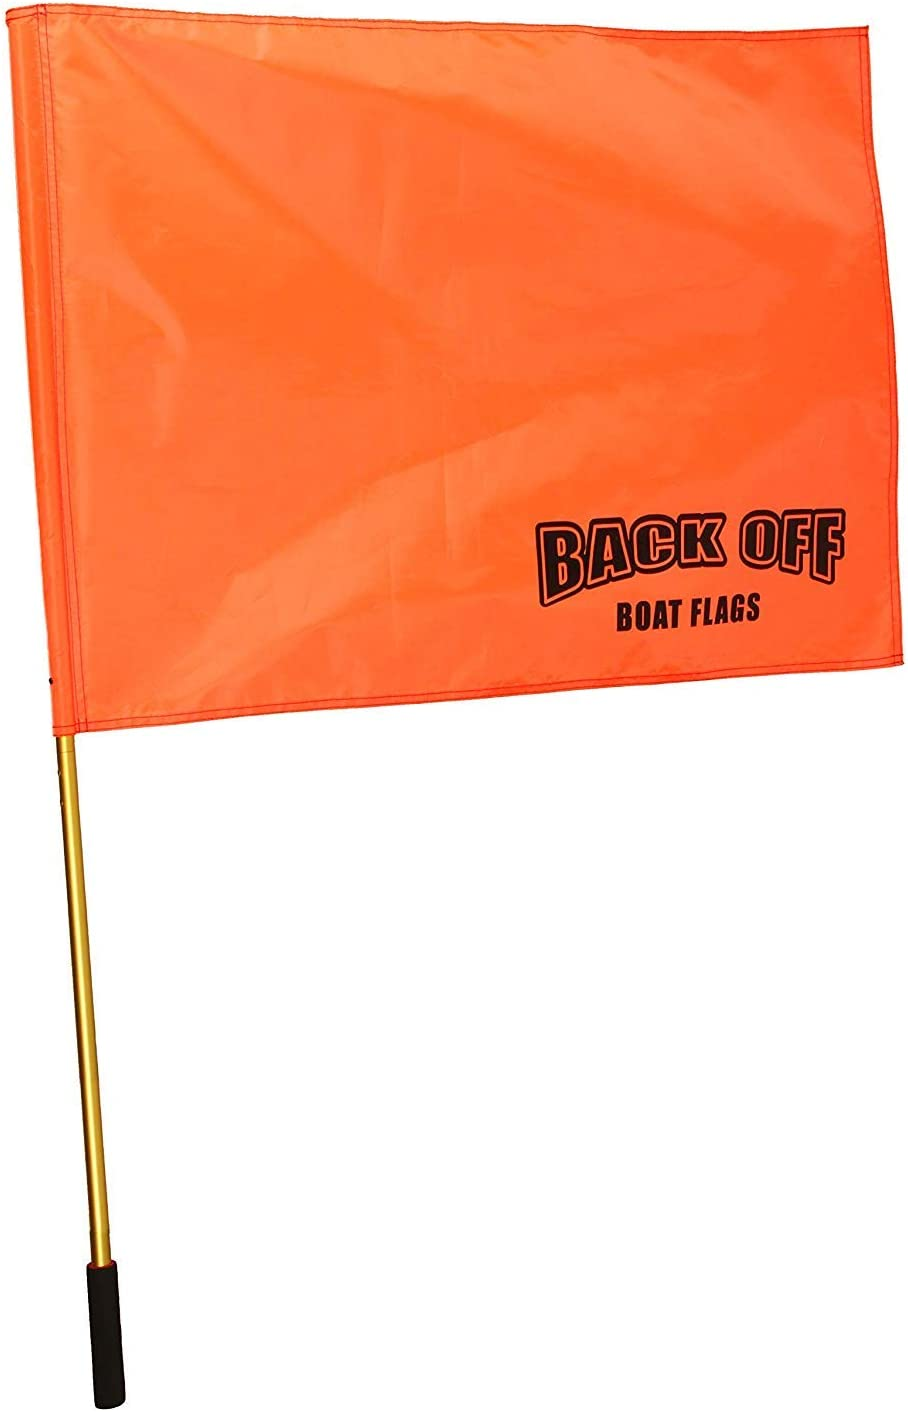 Back Off Boat Flags Giant Orange Boating Safety Flag with Pole for Water Skis Wakeboarding and Tubing - Universal Safety Skier Down Flag